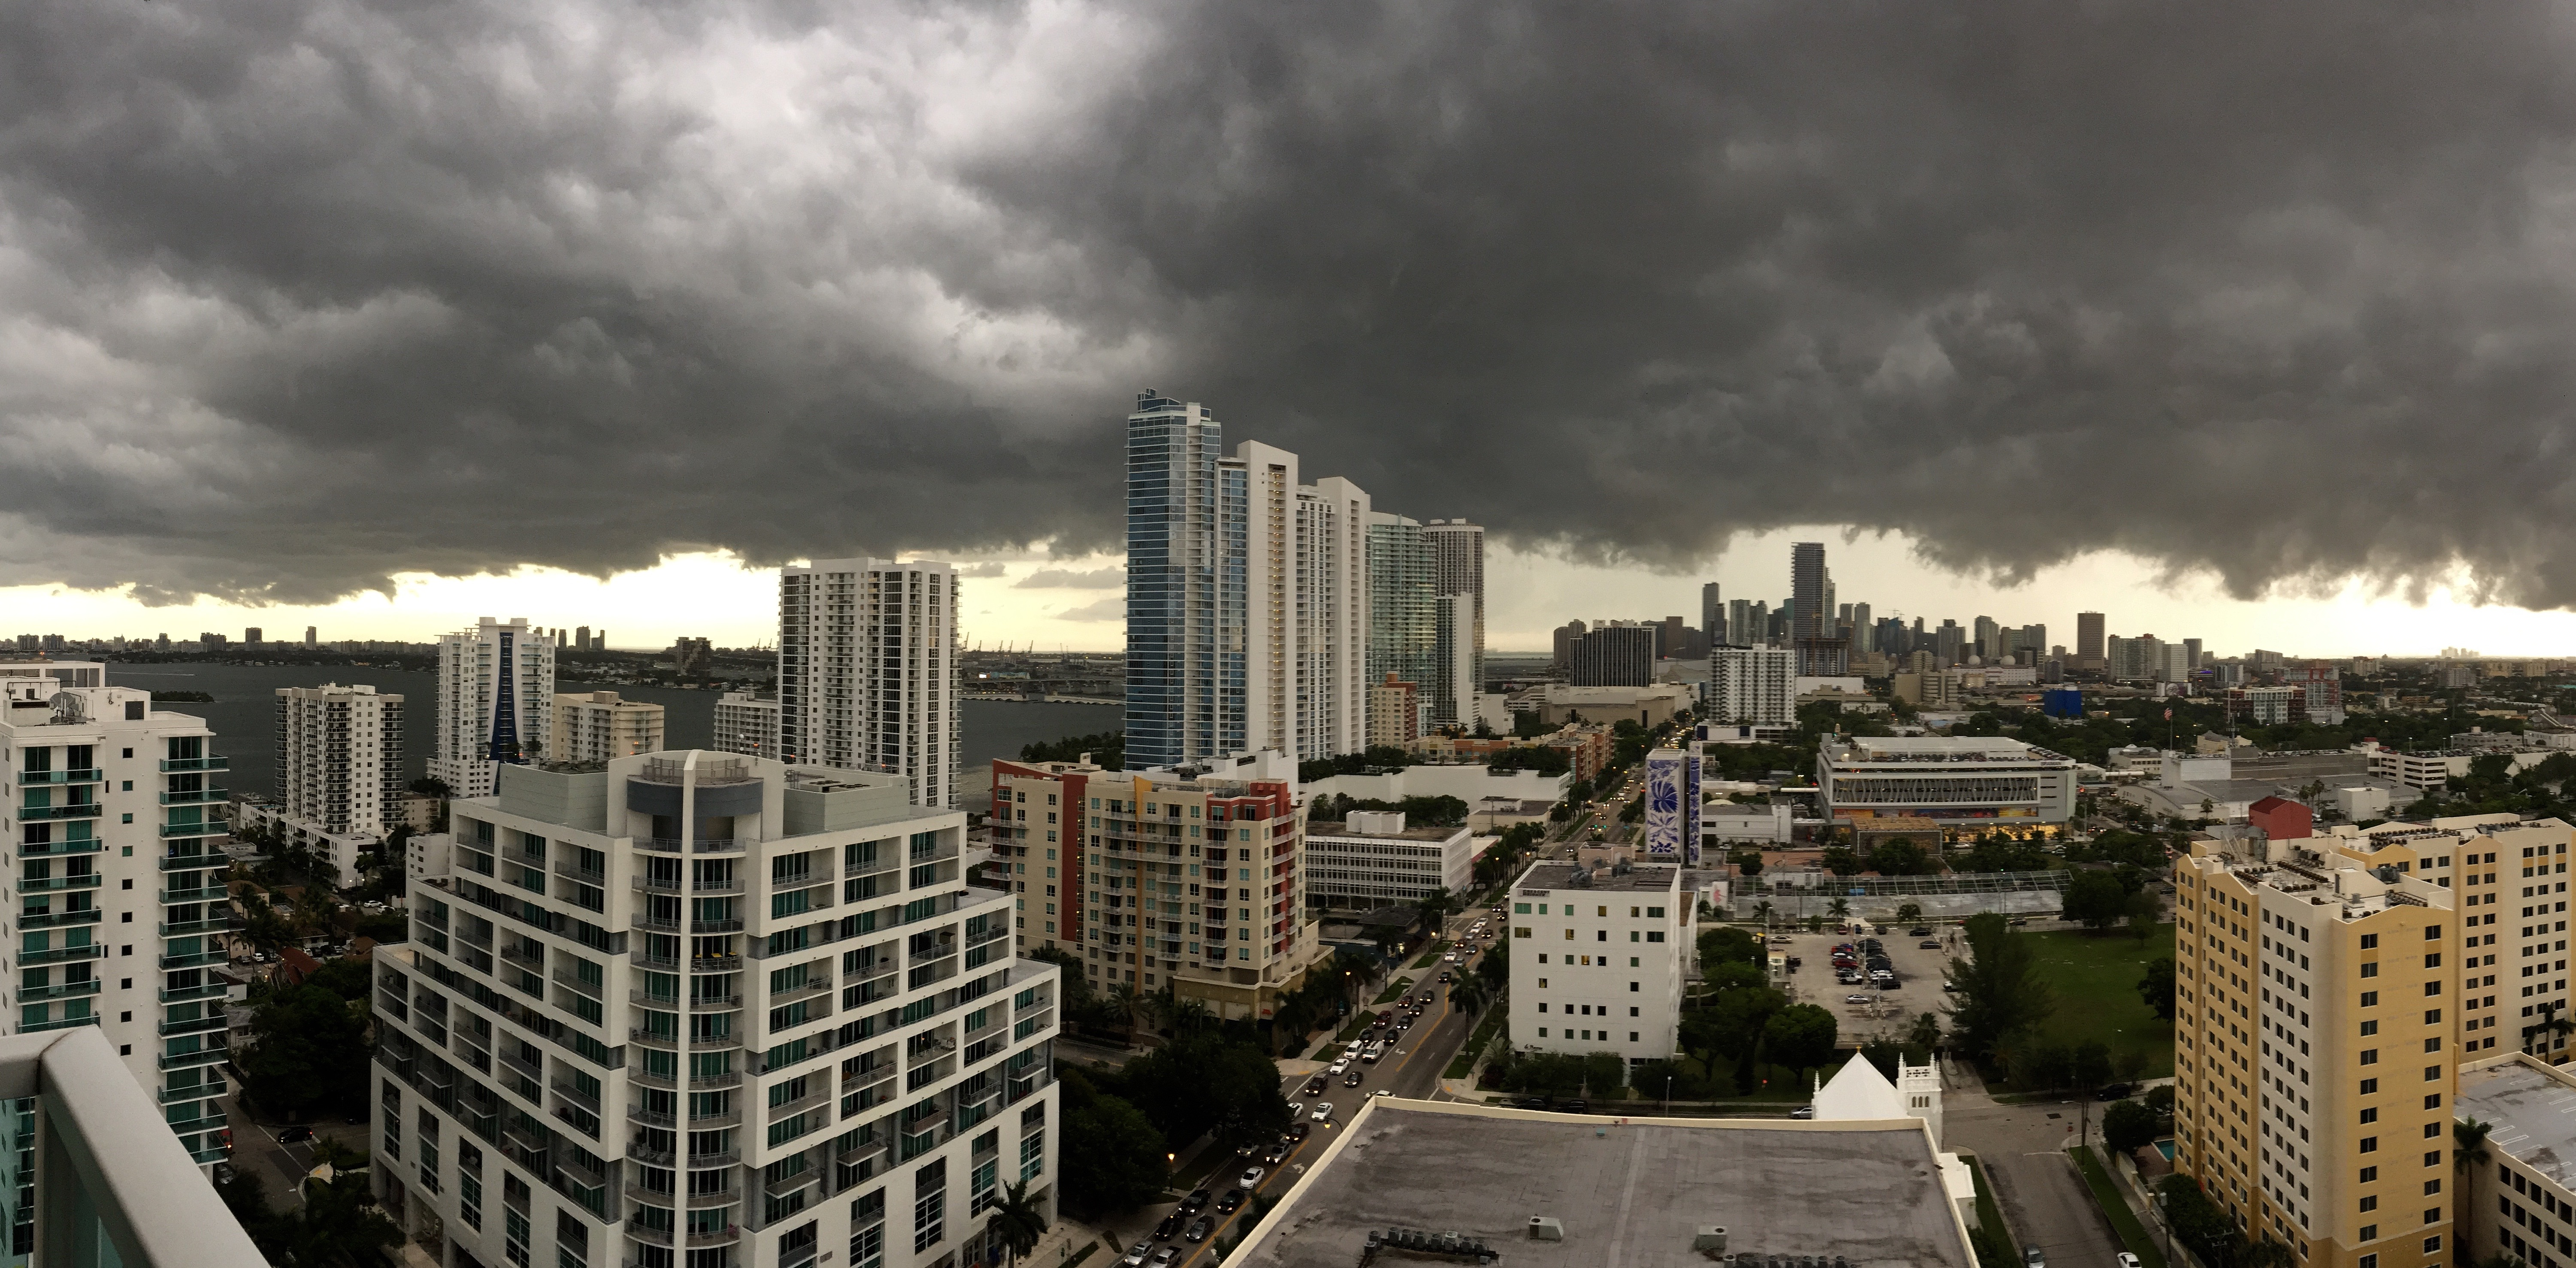 A gloomy Miami afternoon, with dark clouds hovering over Downtown